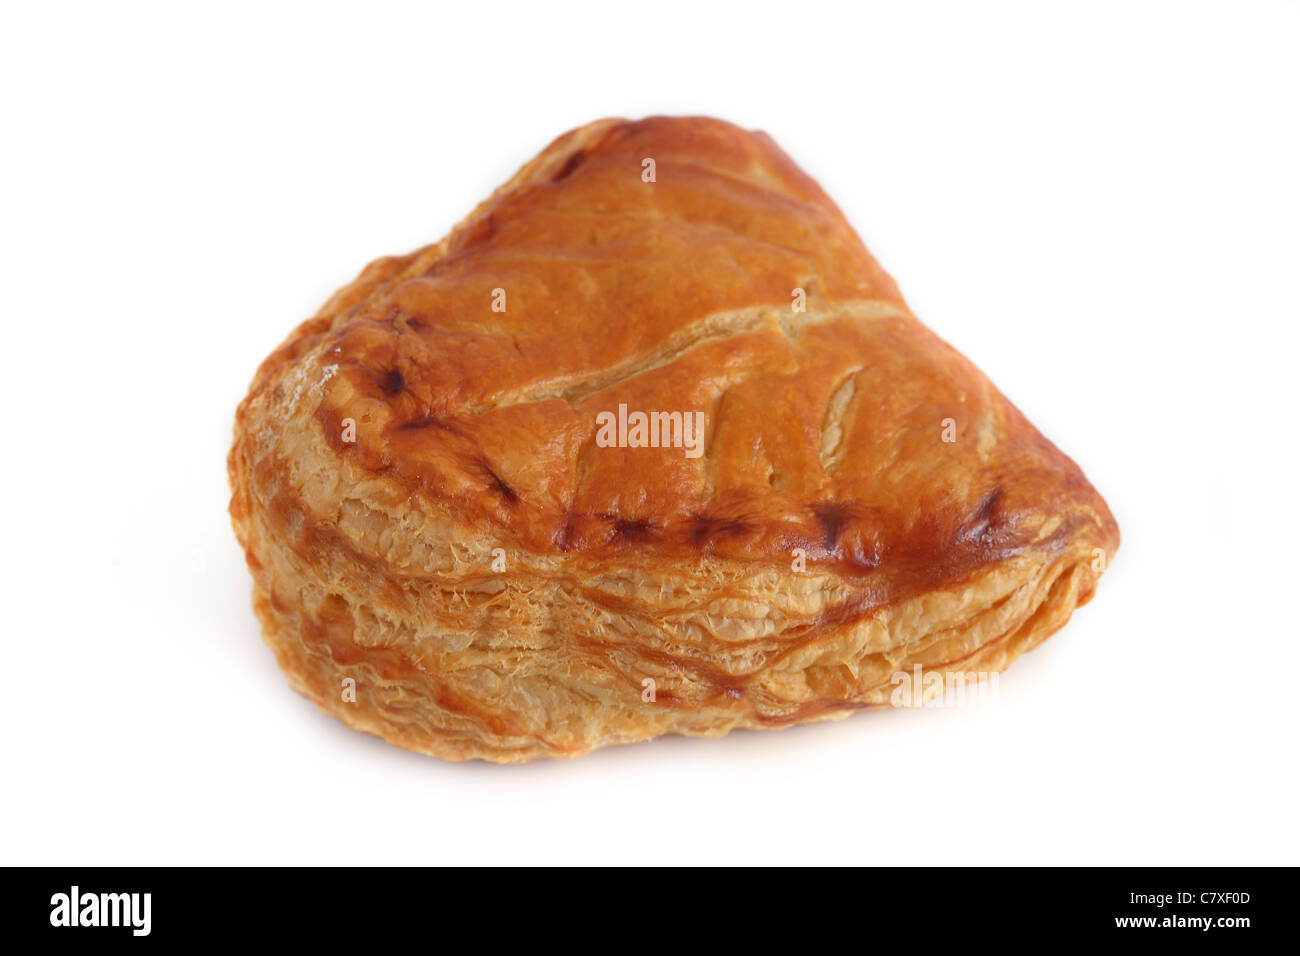 Chausson aux pommes Apple turnover - Stock Image